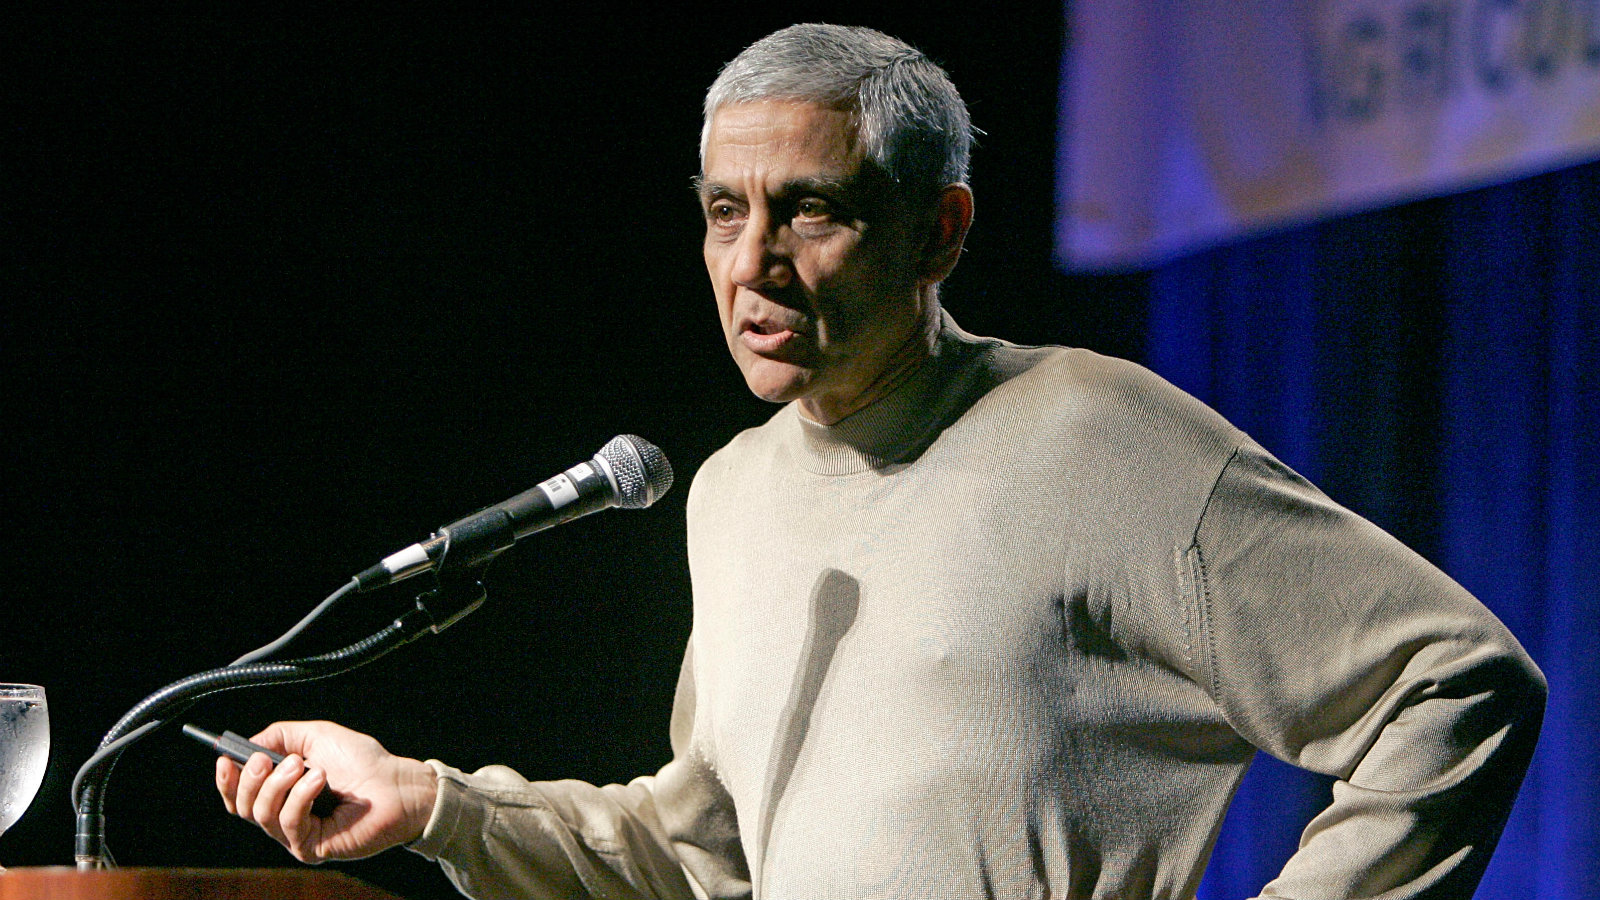 Vinod Khosla speaks about fuels of the future at a Bio Tech conference in Lake Buena Vista, Fla., Wednesday, March 21, 2007. Khosla, Sun Microsystems founder and venture capitalist has invested many millions of dollars in biotech companies and others pursuing alternative fuel strategies.